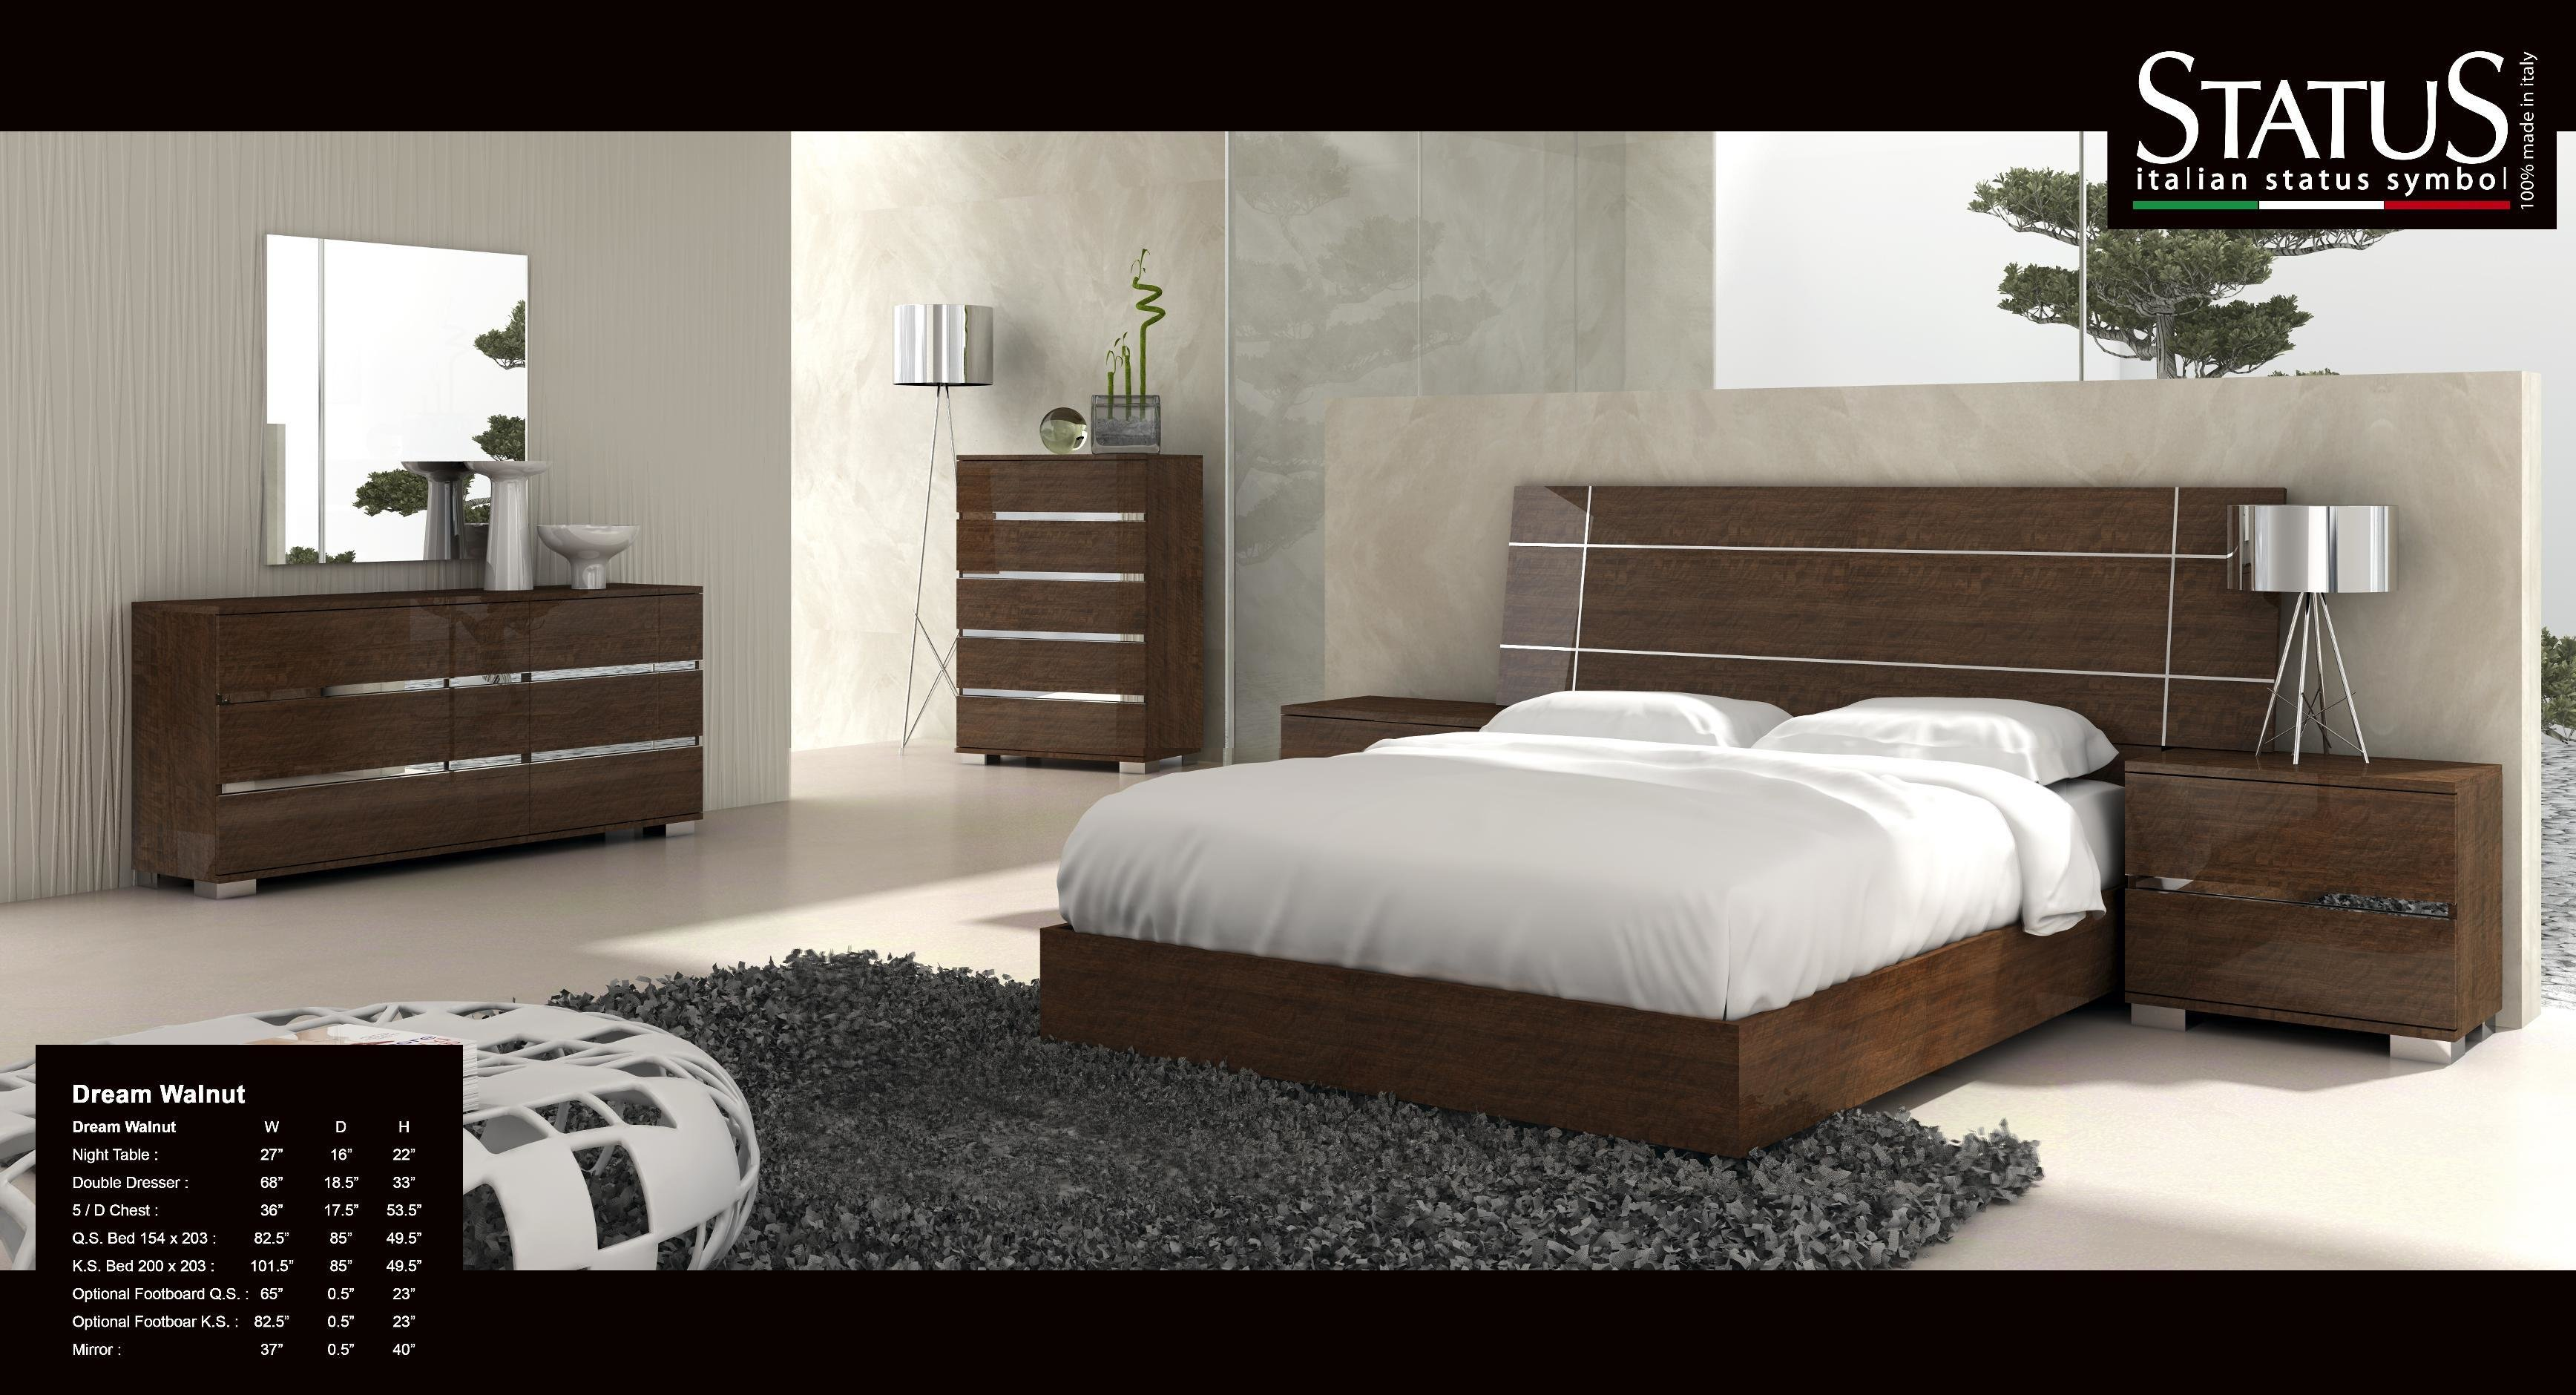 Best Dream King Size Modern Design Bedroom Set Walnut 5 Pc Bed Made In Italy Ebay With Pictures